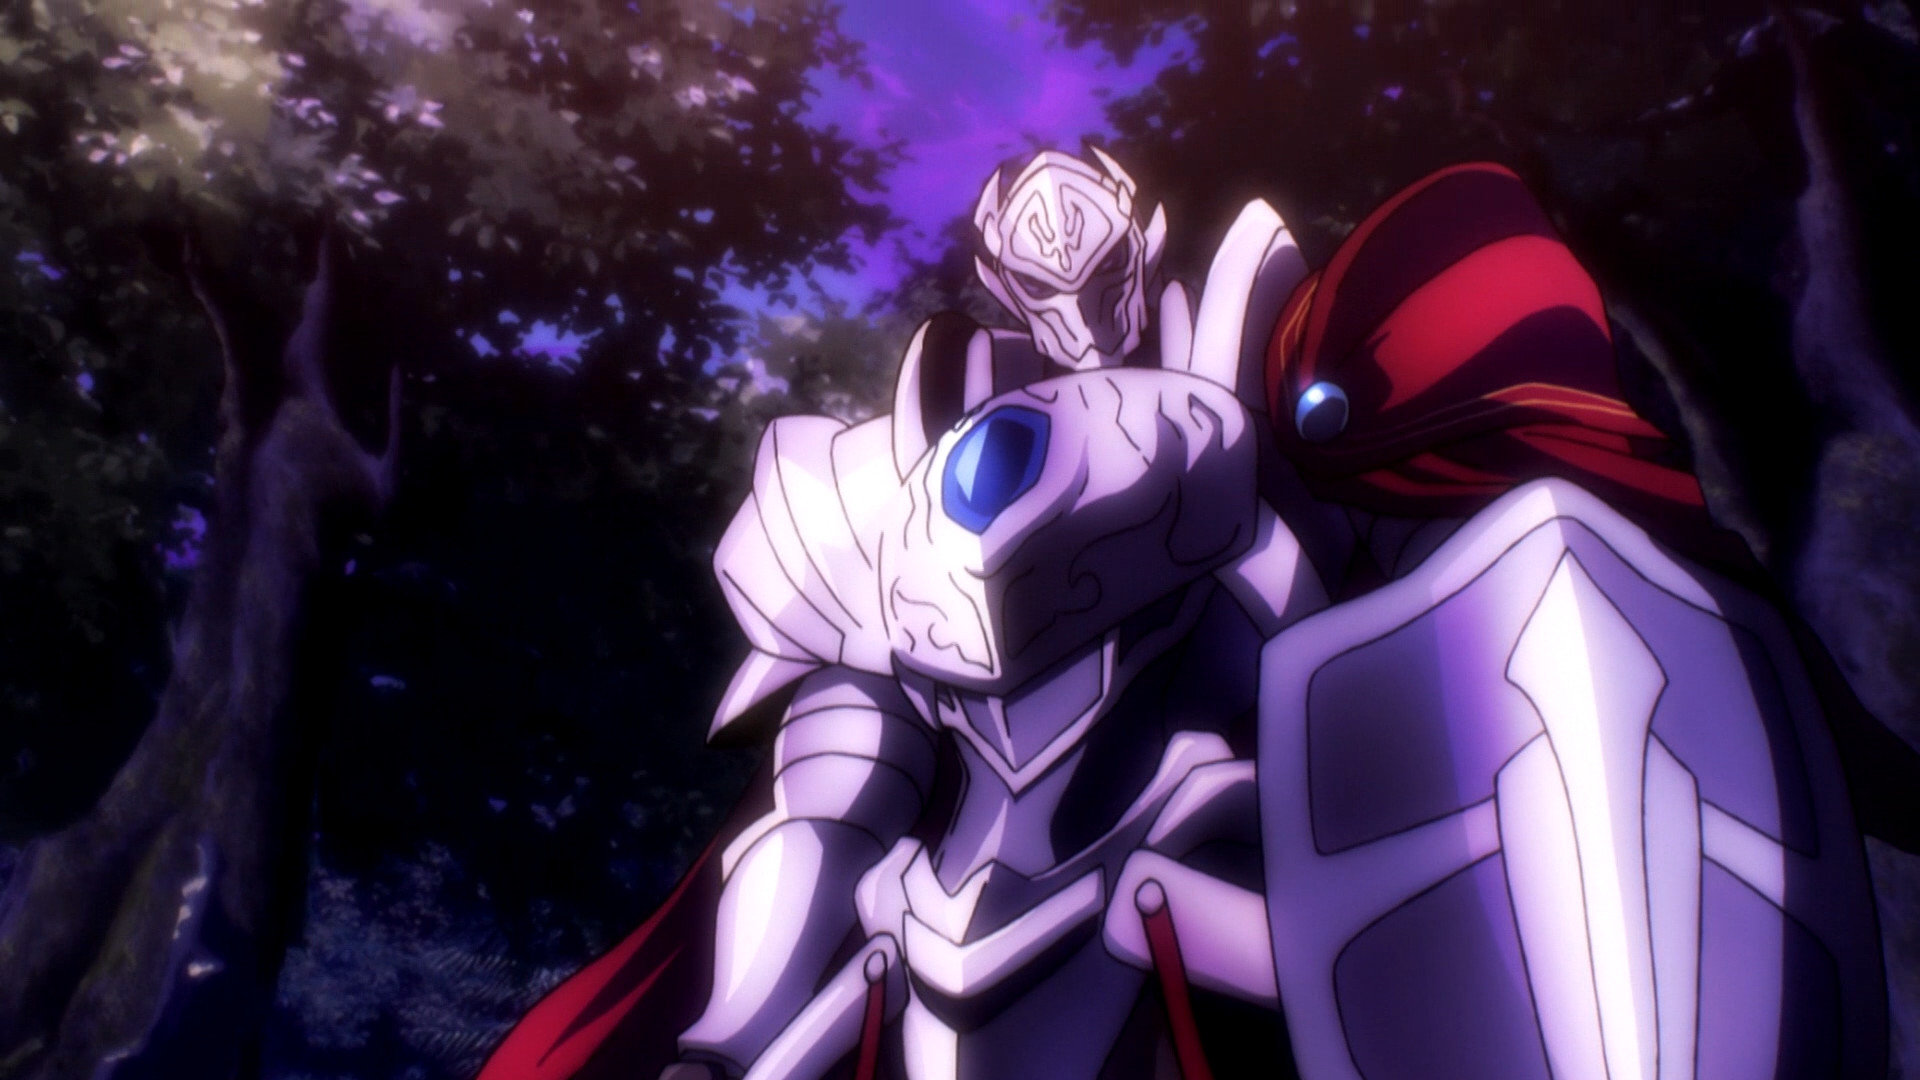 Tag: HDQ Overlord Wallpapers, Overlord Wallpapers, Backgrounds and Pictures  for Free, Dorothea